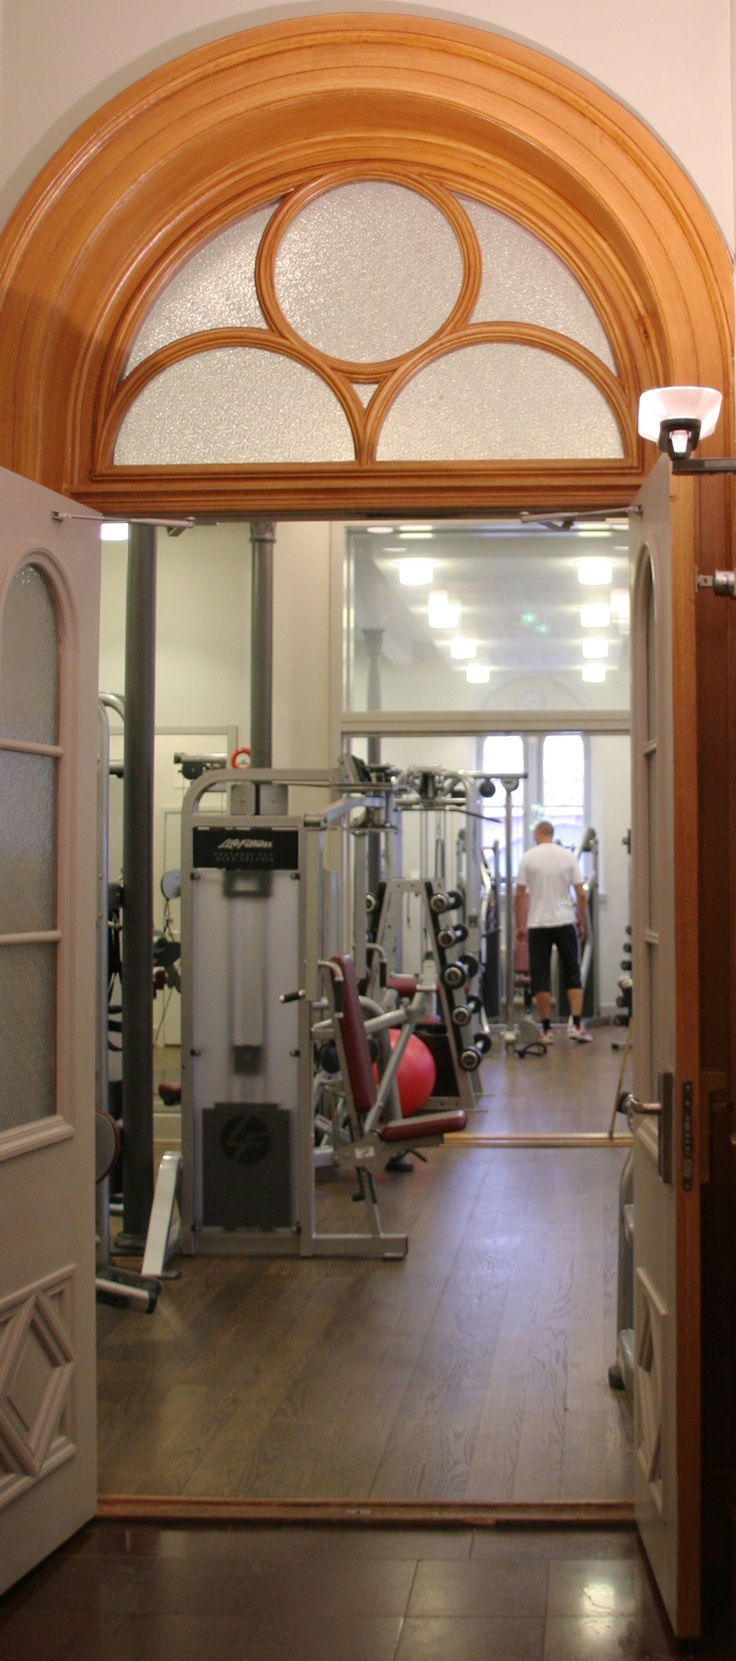 Hagabadet gym....I want this in my house!